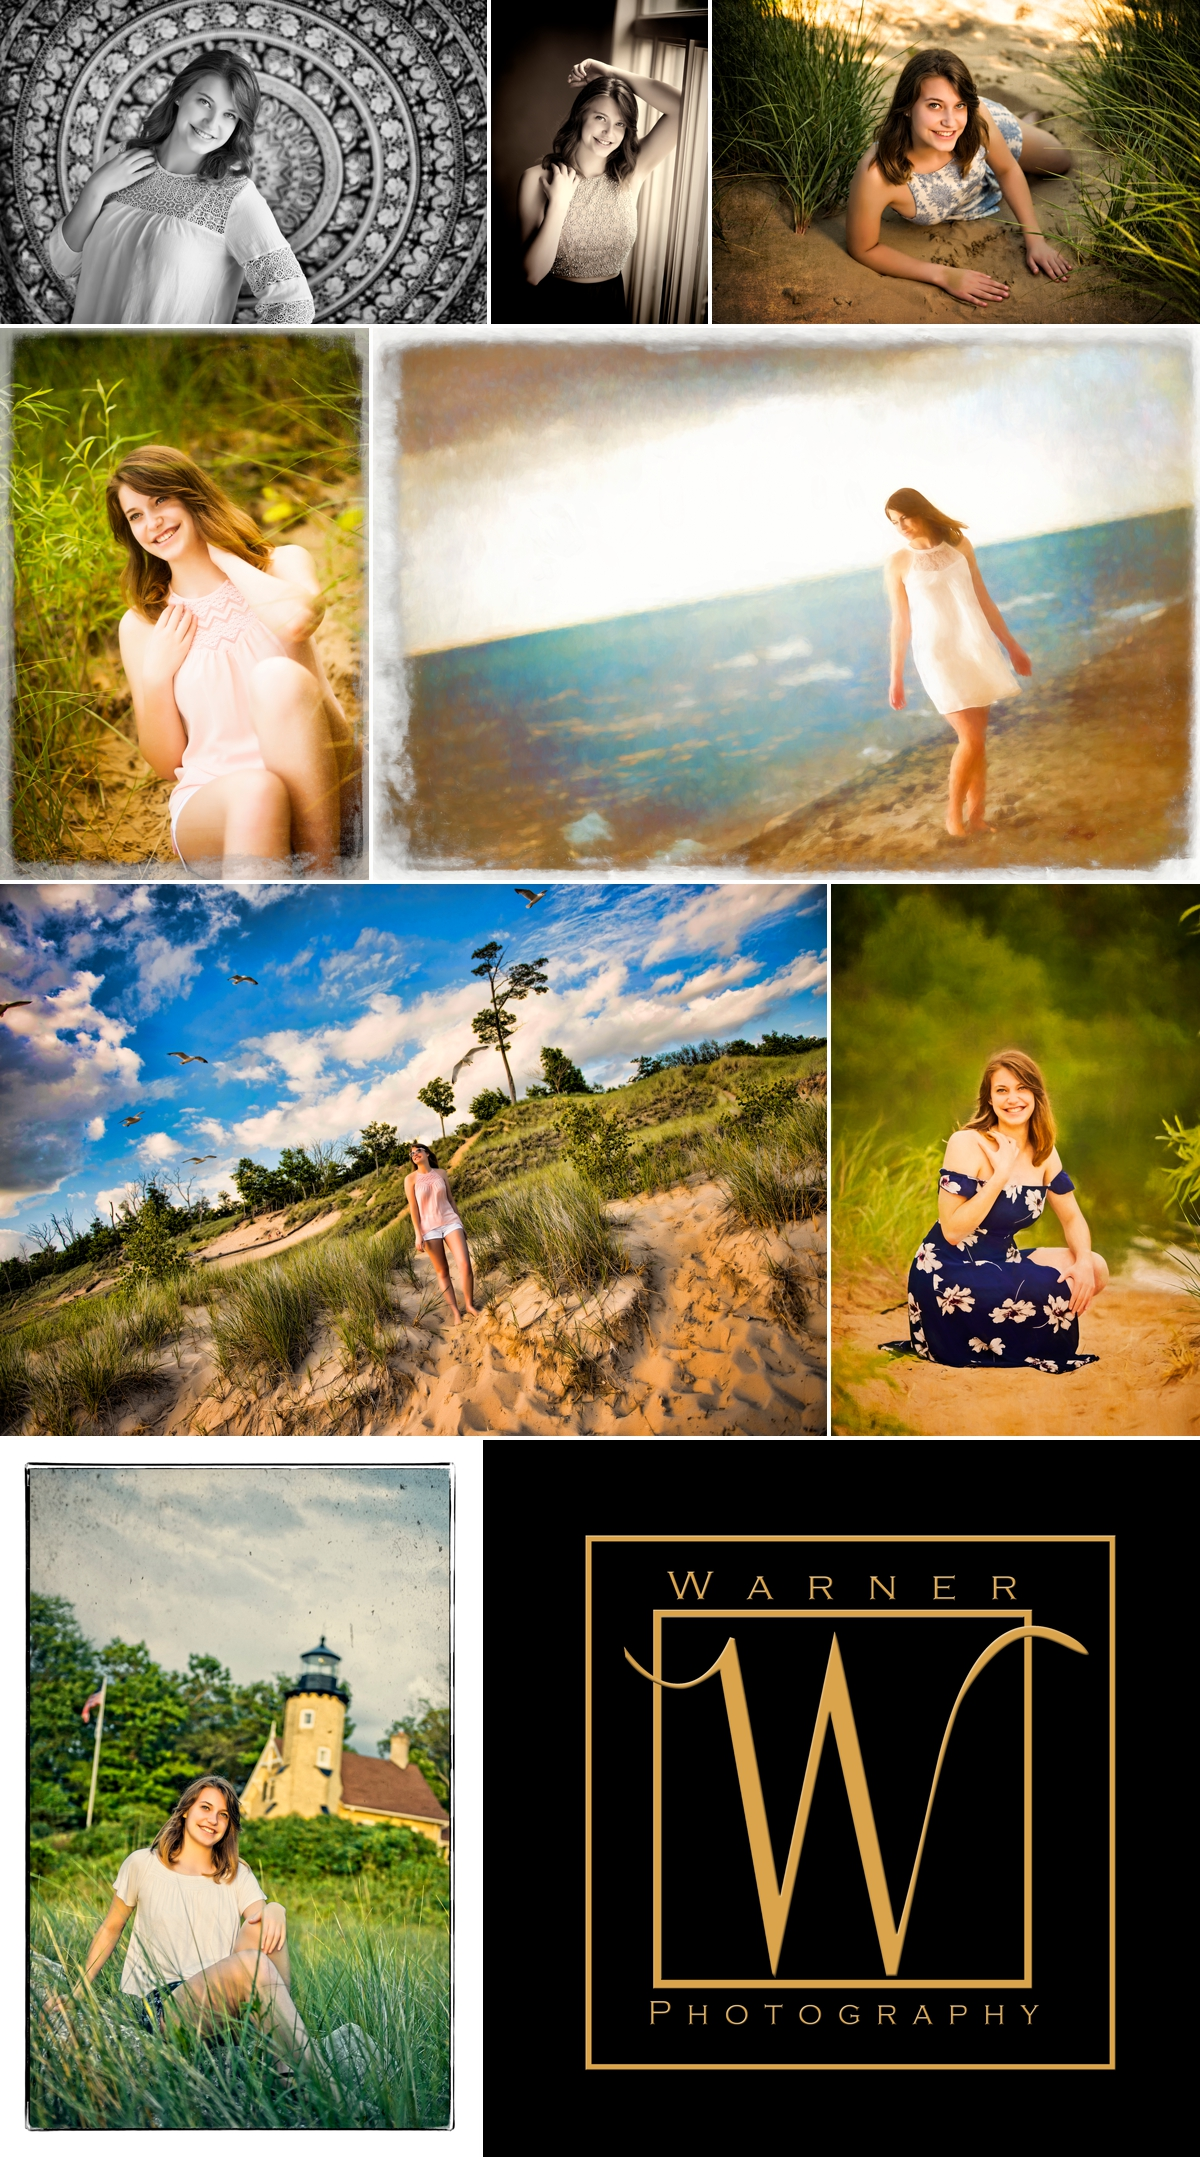 Ali Senior Collage photos by Warner Photography in Midland Michigan